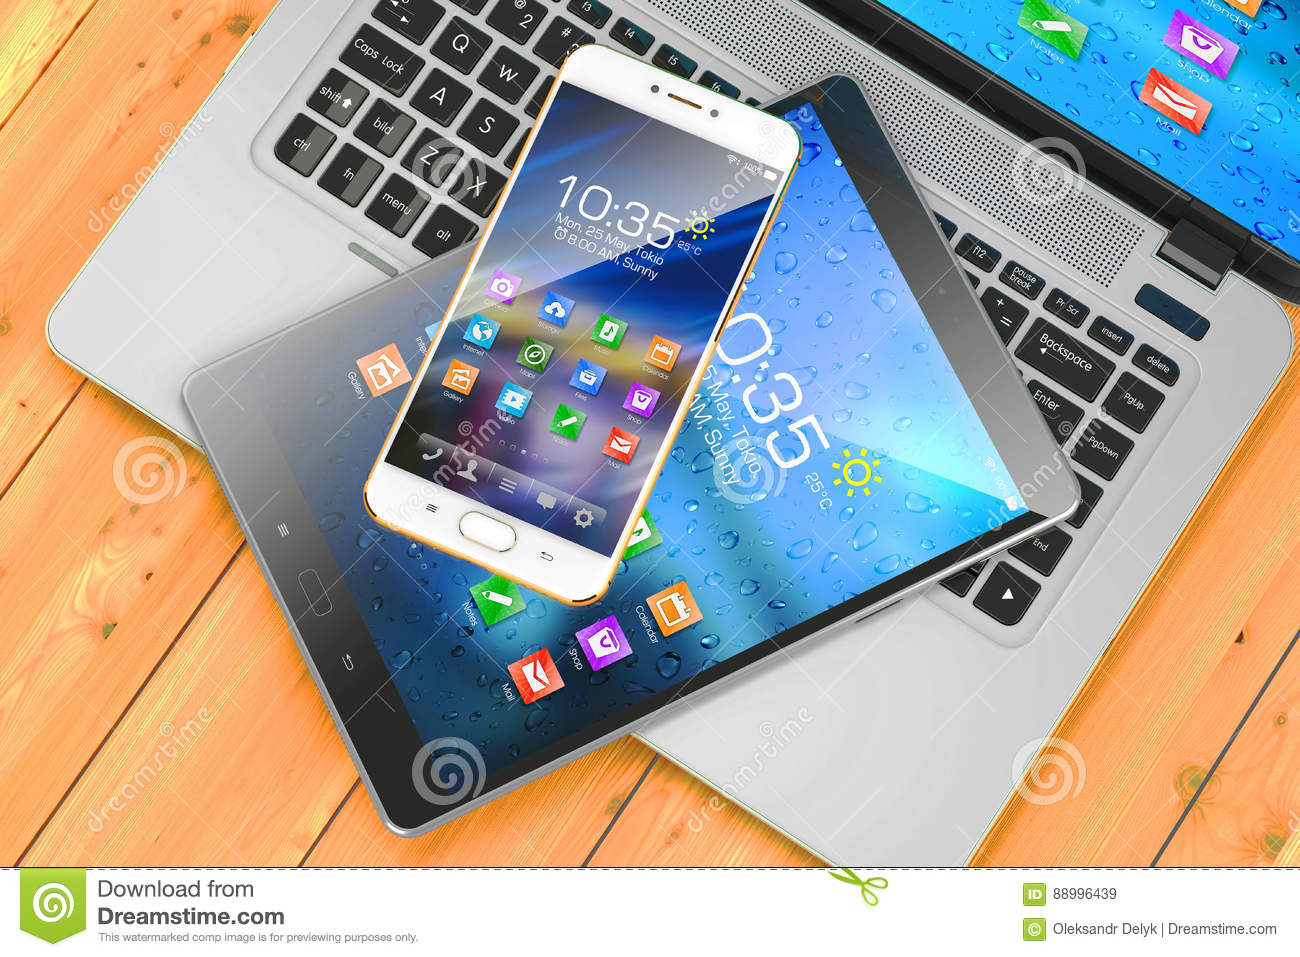 Mobile devices. Laptop, smartphone, pad on wooden table